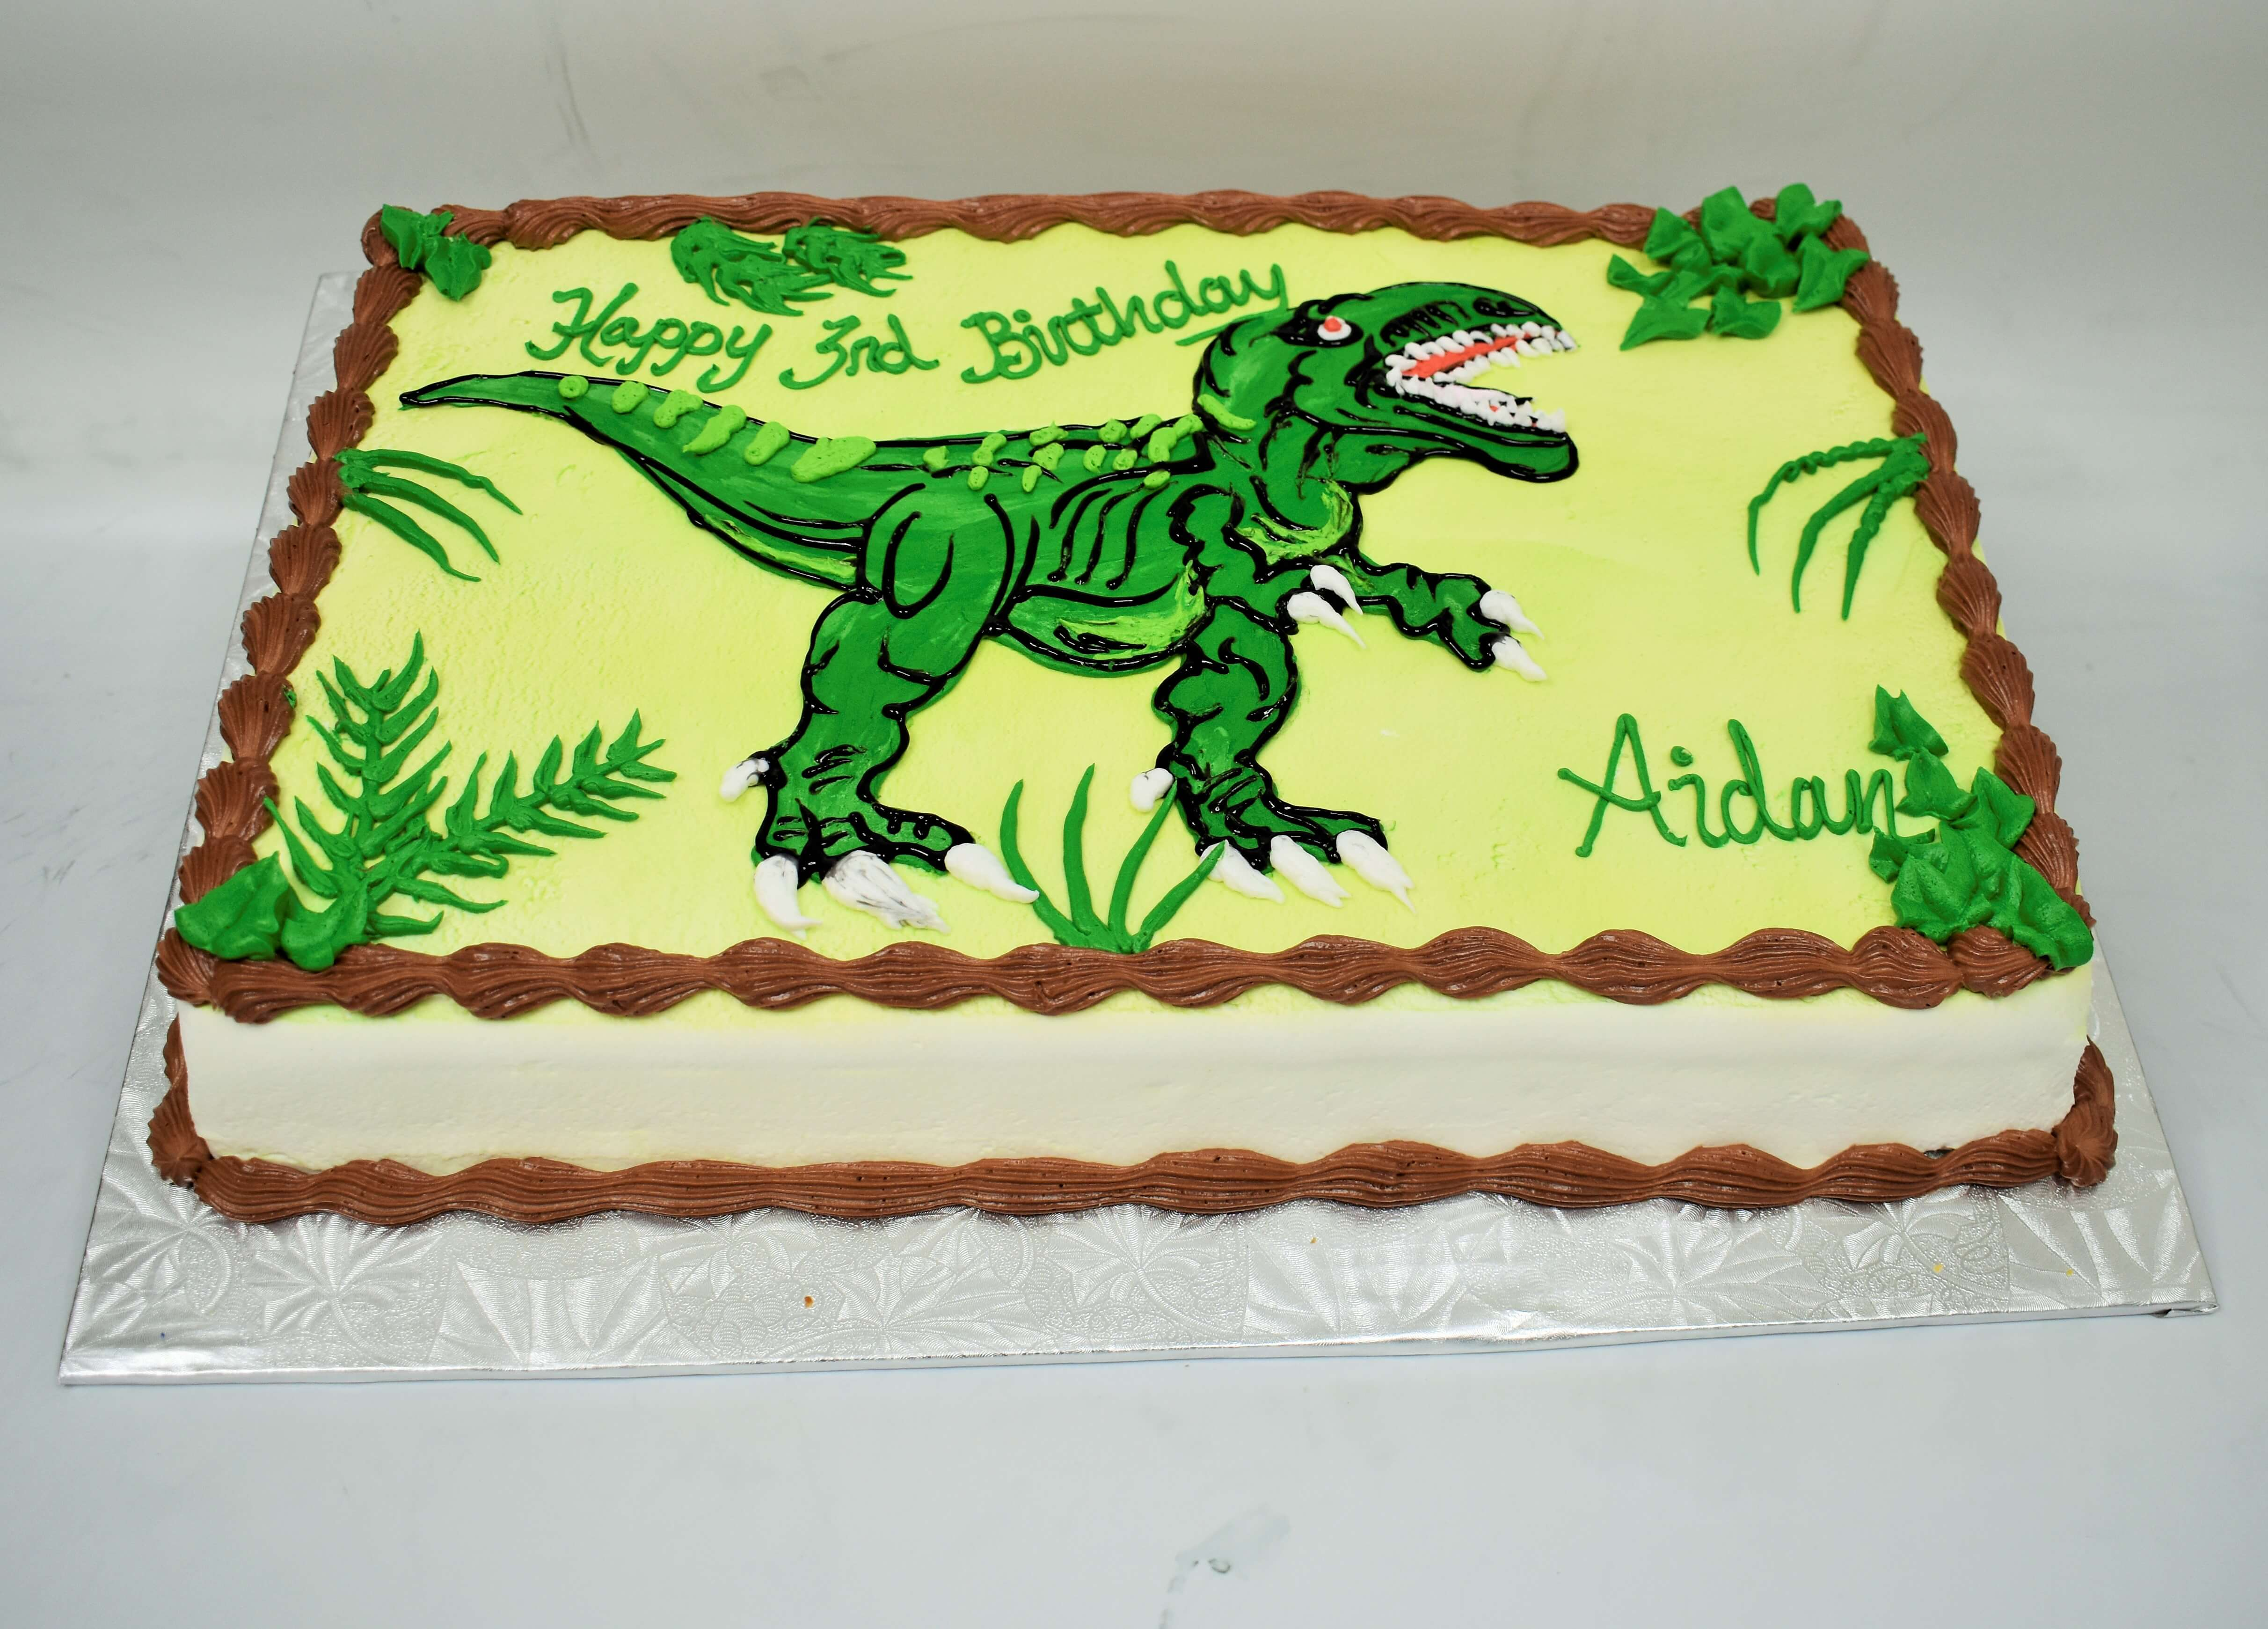 MaArthur's Bakery Custom Cake with T-Rex Standing around Leafy Plants